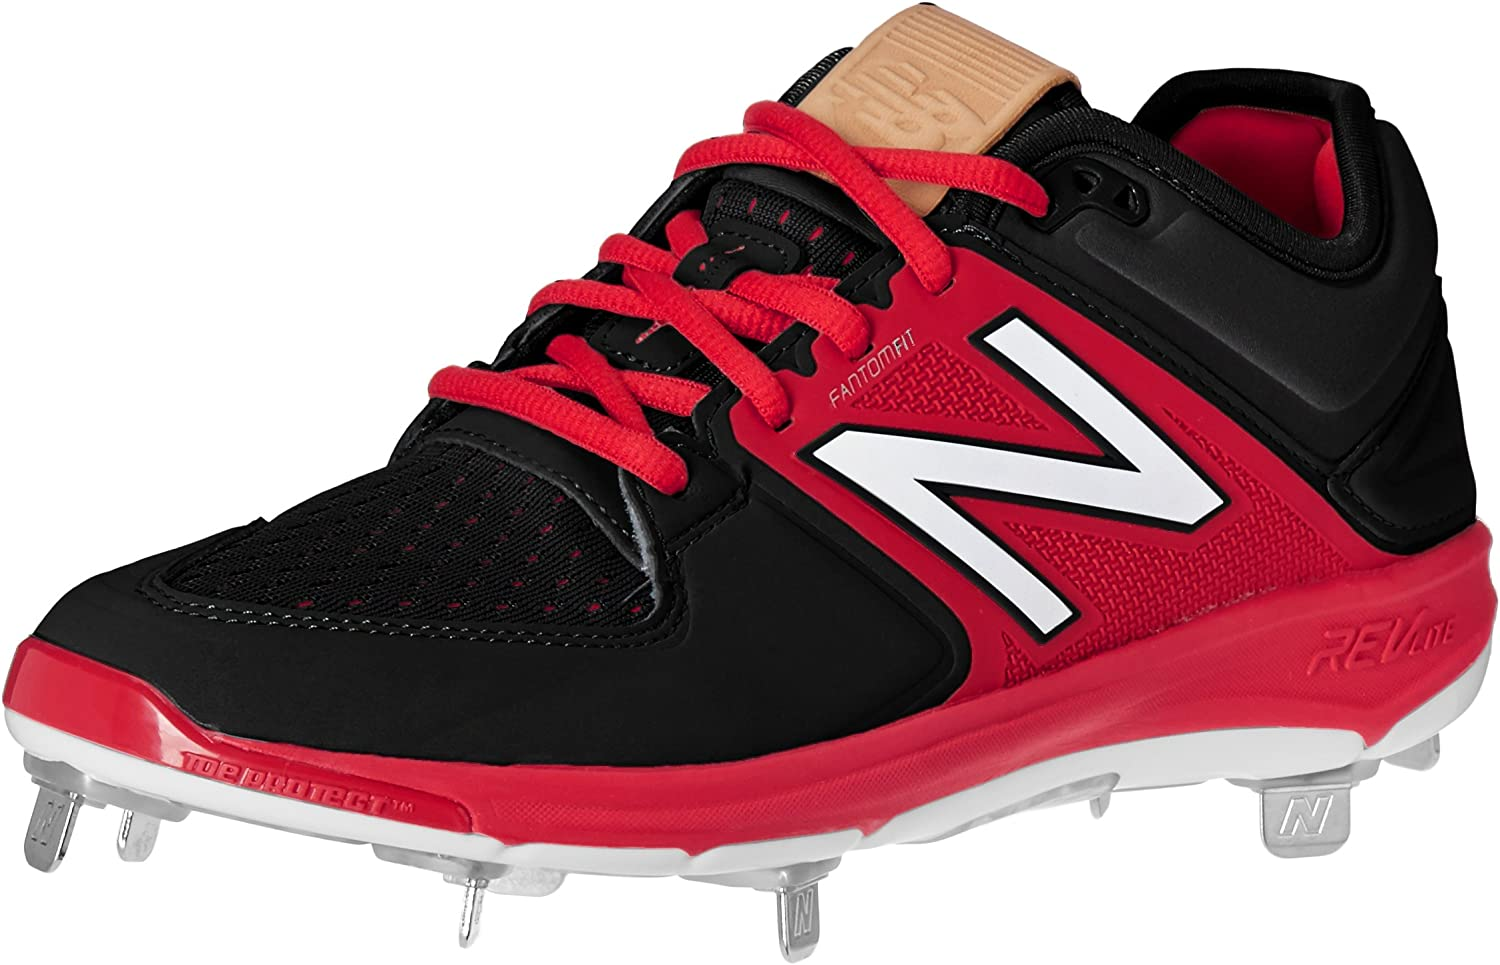 New Balance Men's L3000v3 Metal Baseball schuhe, schwarz rot, 8.5 2E US